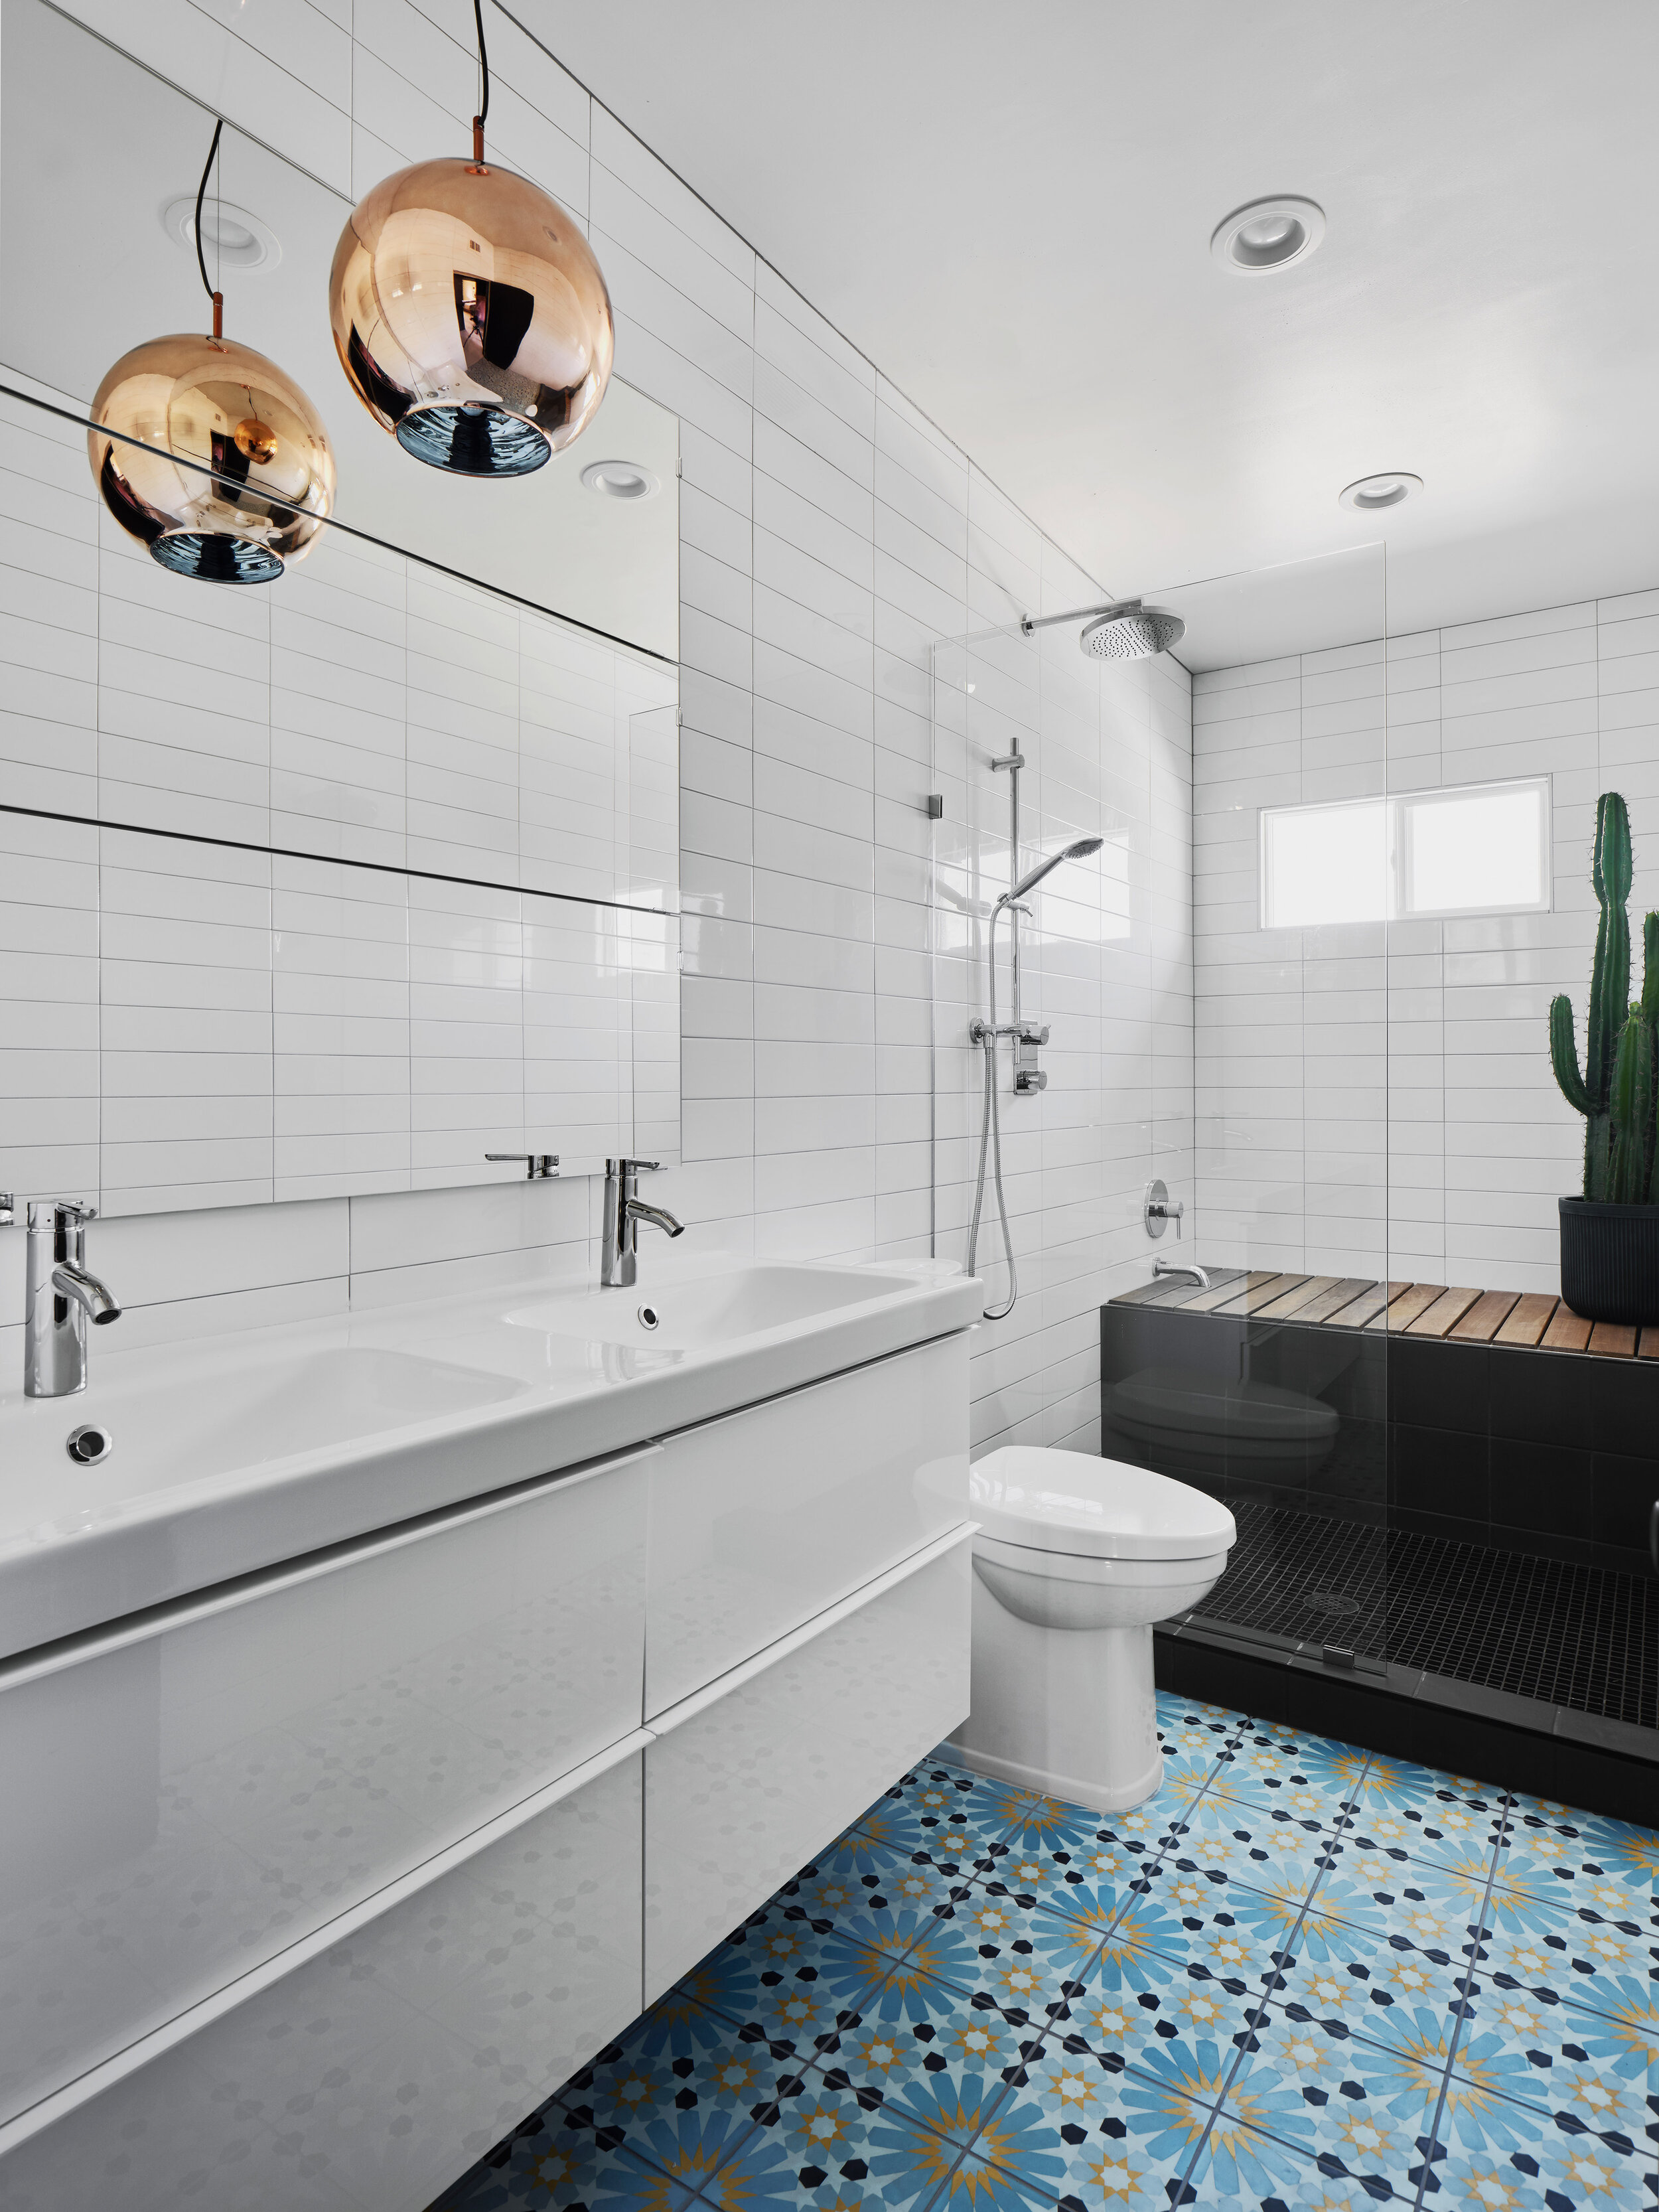 Tony Williams Eisenhower Airbnb bathroom.jpg